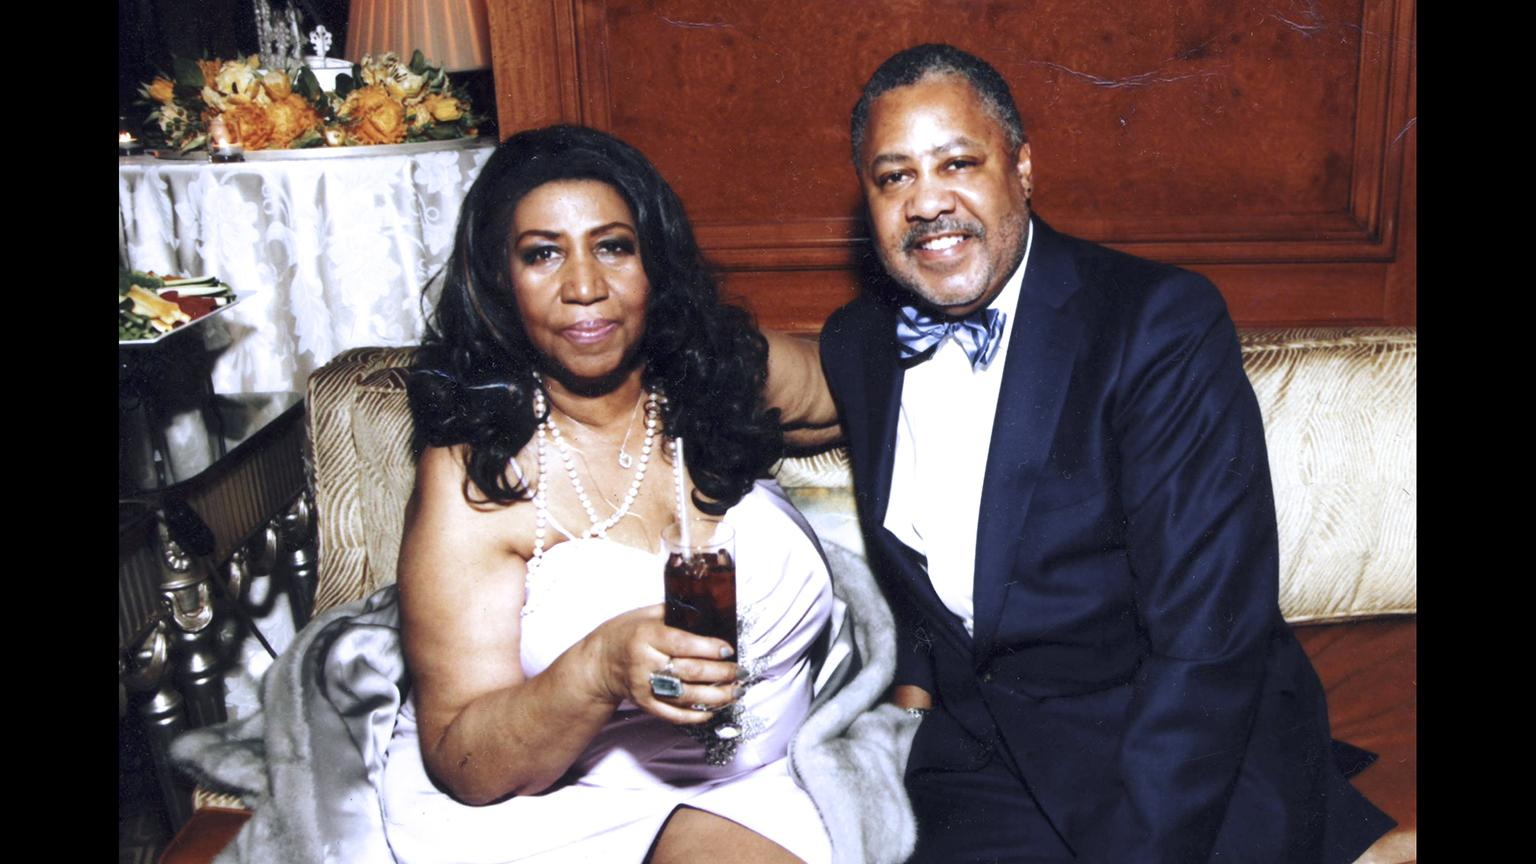 Fred Nelson III, right, served as Aretha Franklin's music director and conductor from 2011 until her death on Aug. 16, 2018. (Courtesy Fred Nelson III)